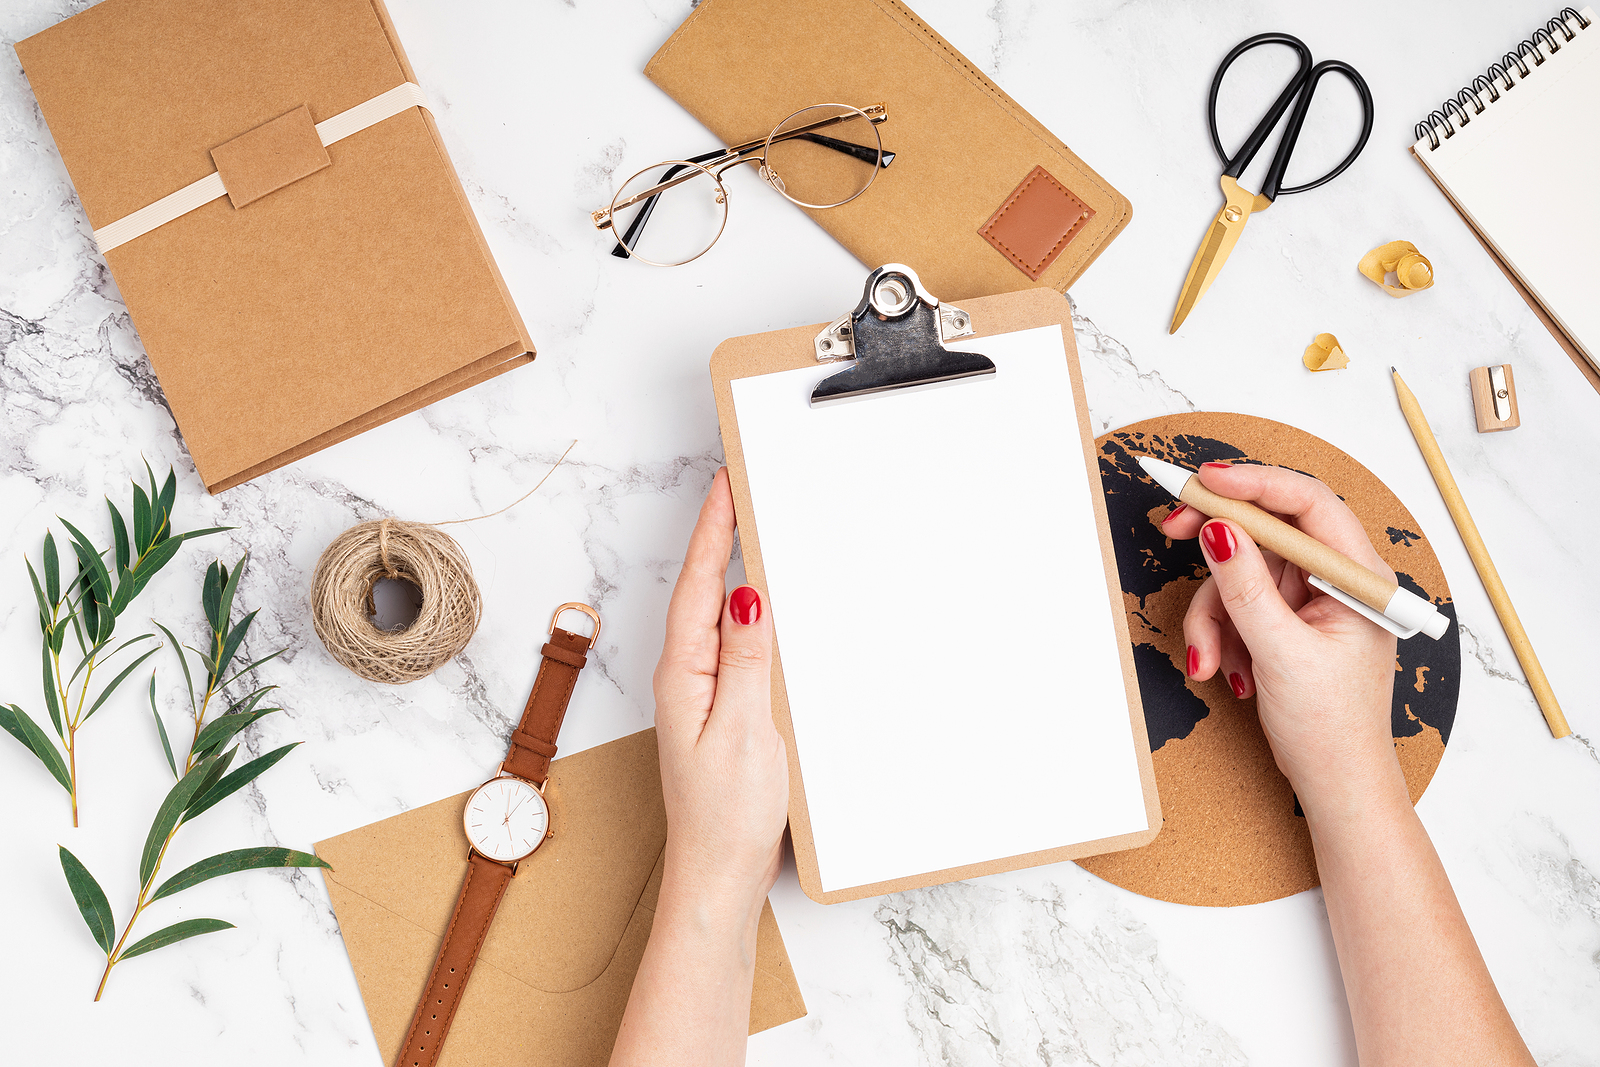 4 Business Consumables Your Company Needs to Better Manage